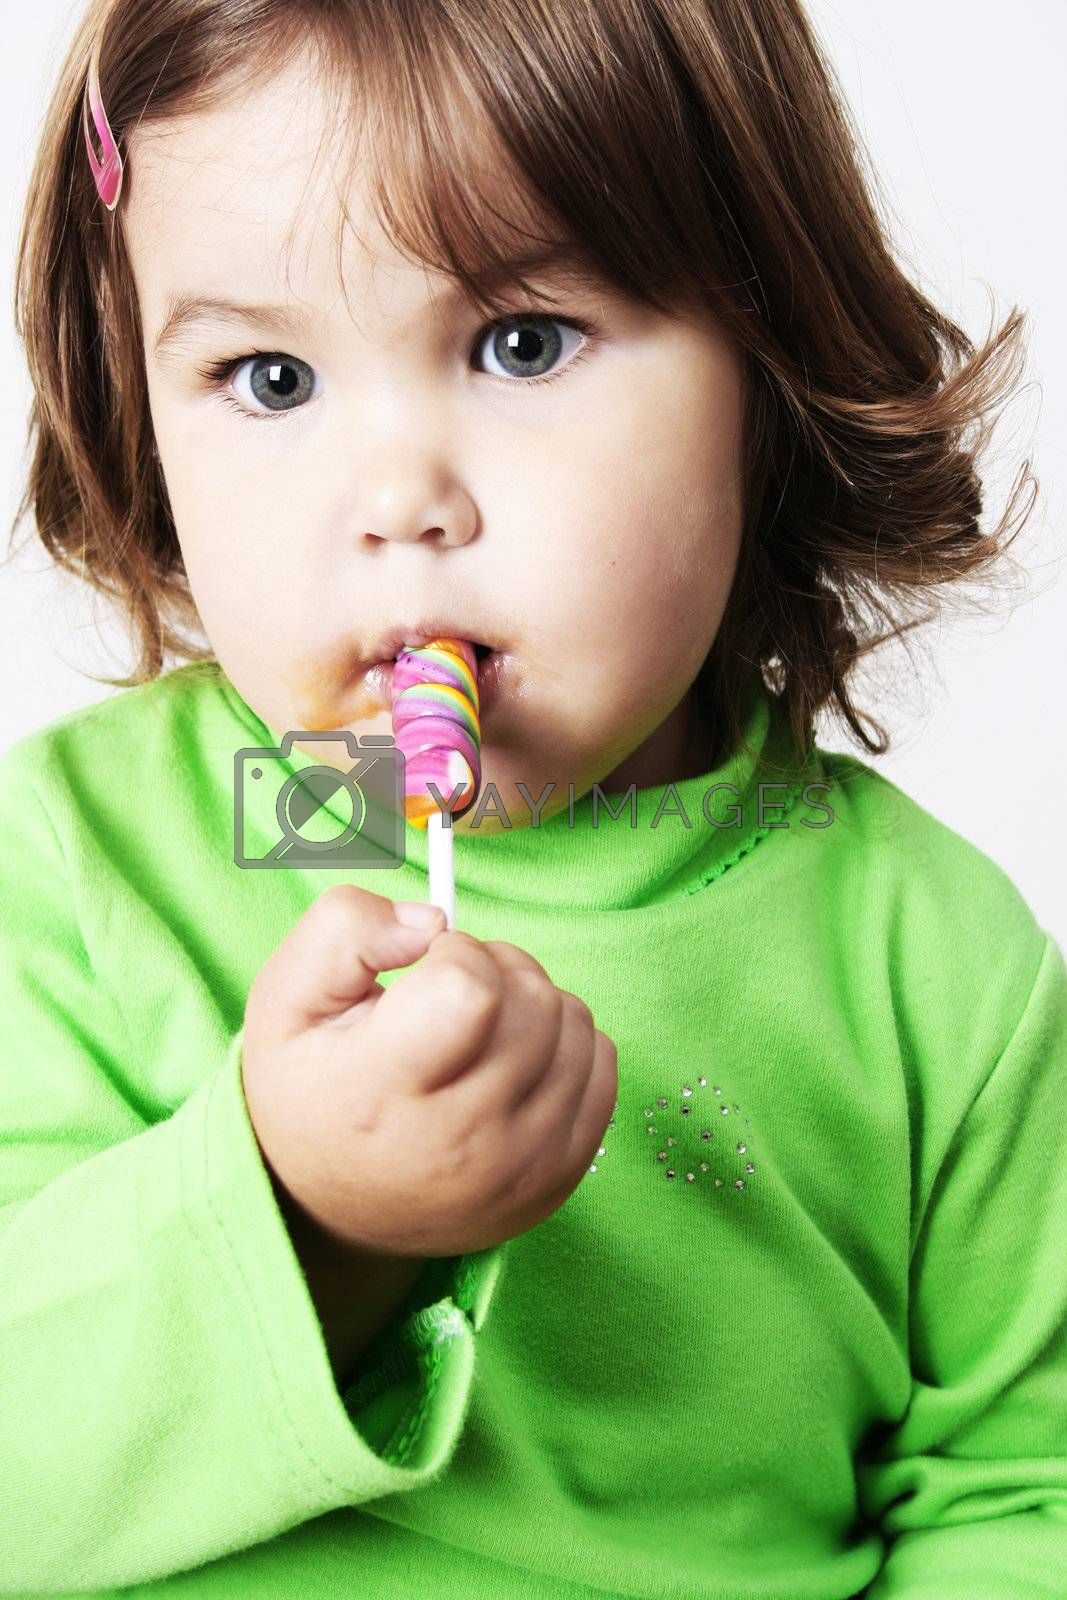 Toddler girl with chubby cheeks eating a sticky lollipop